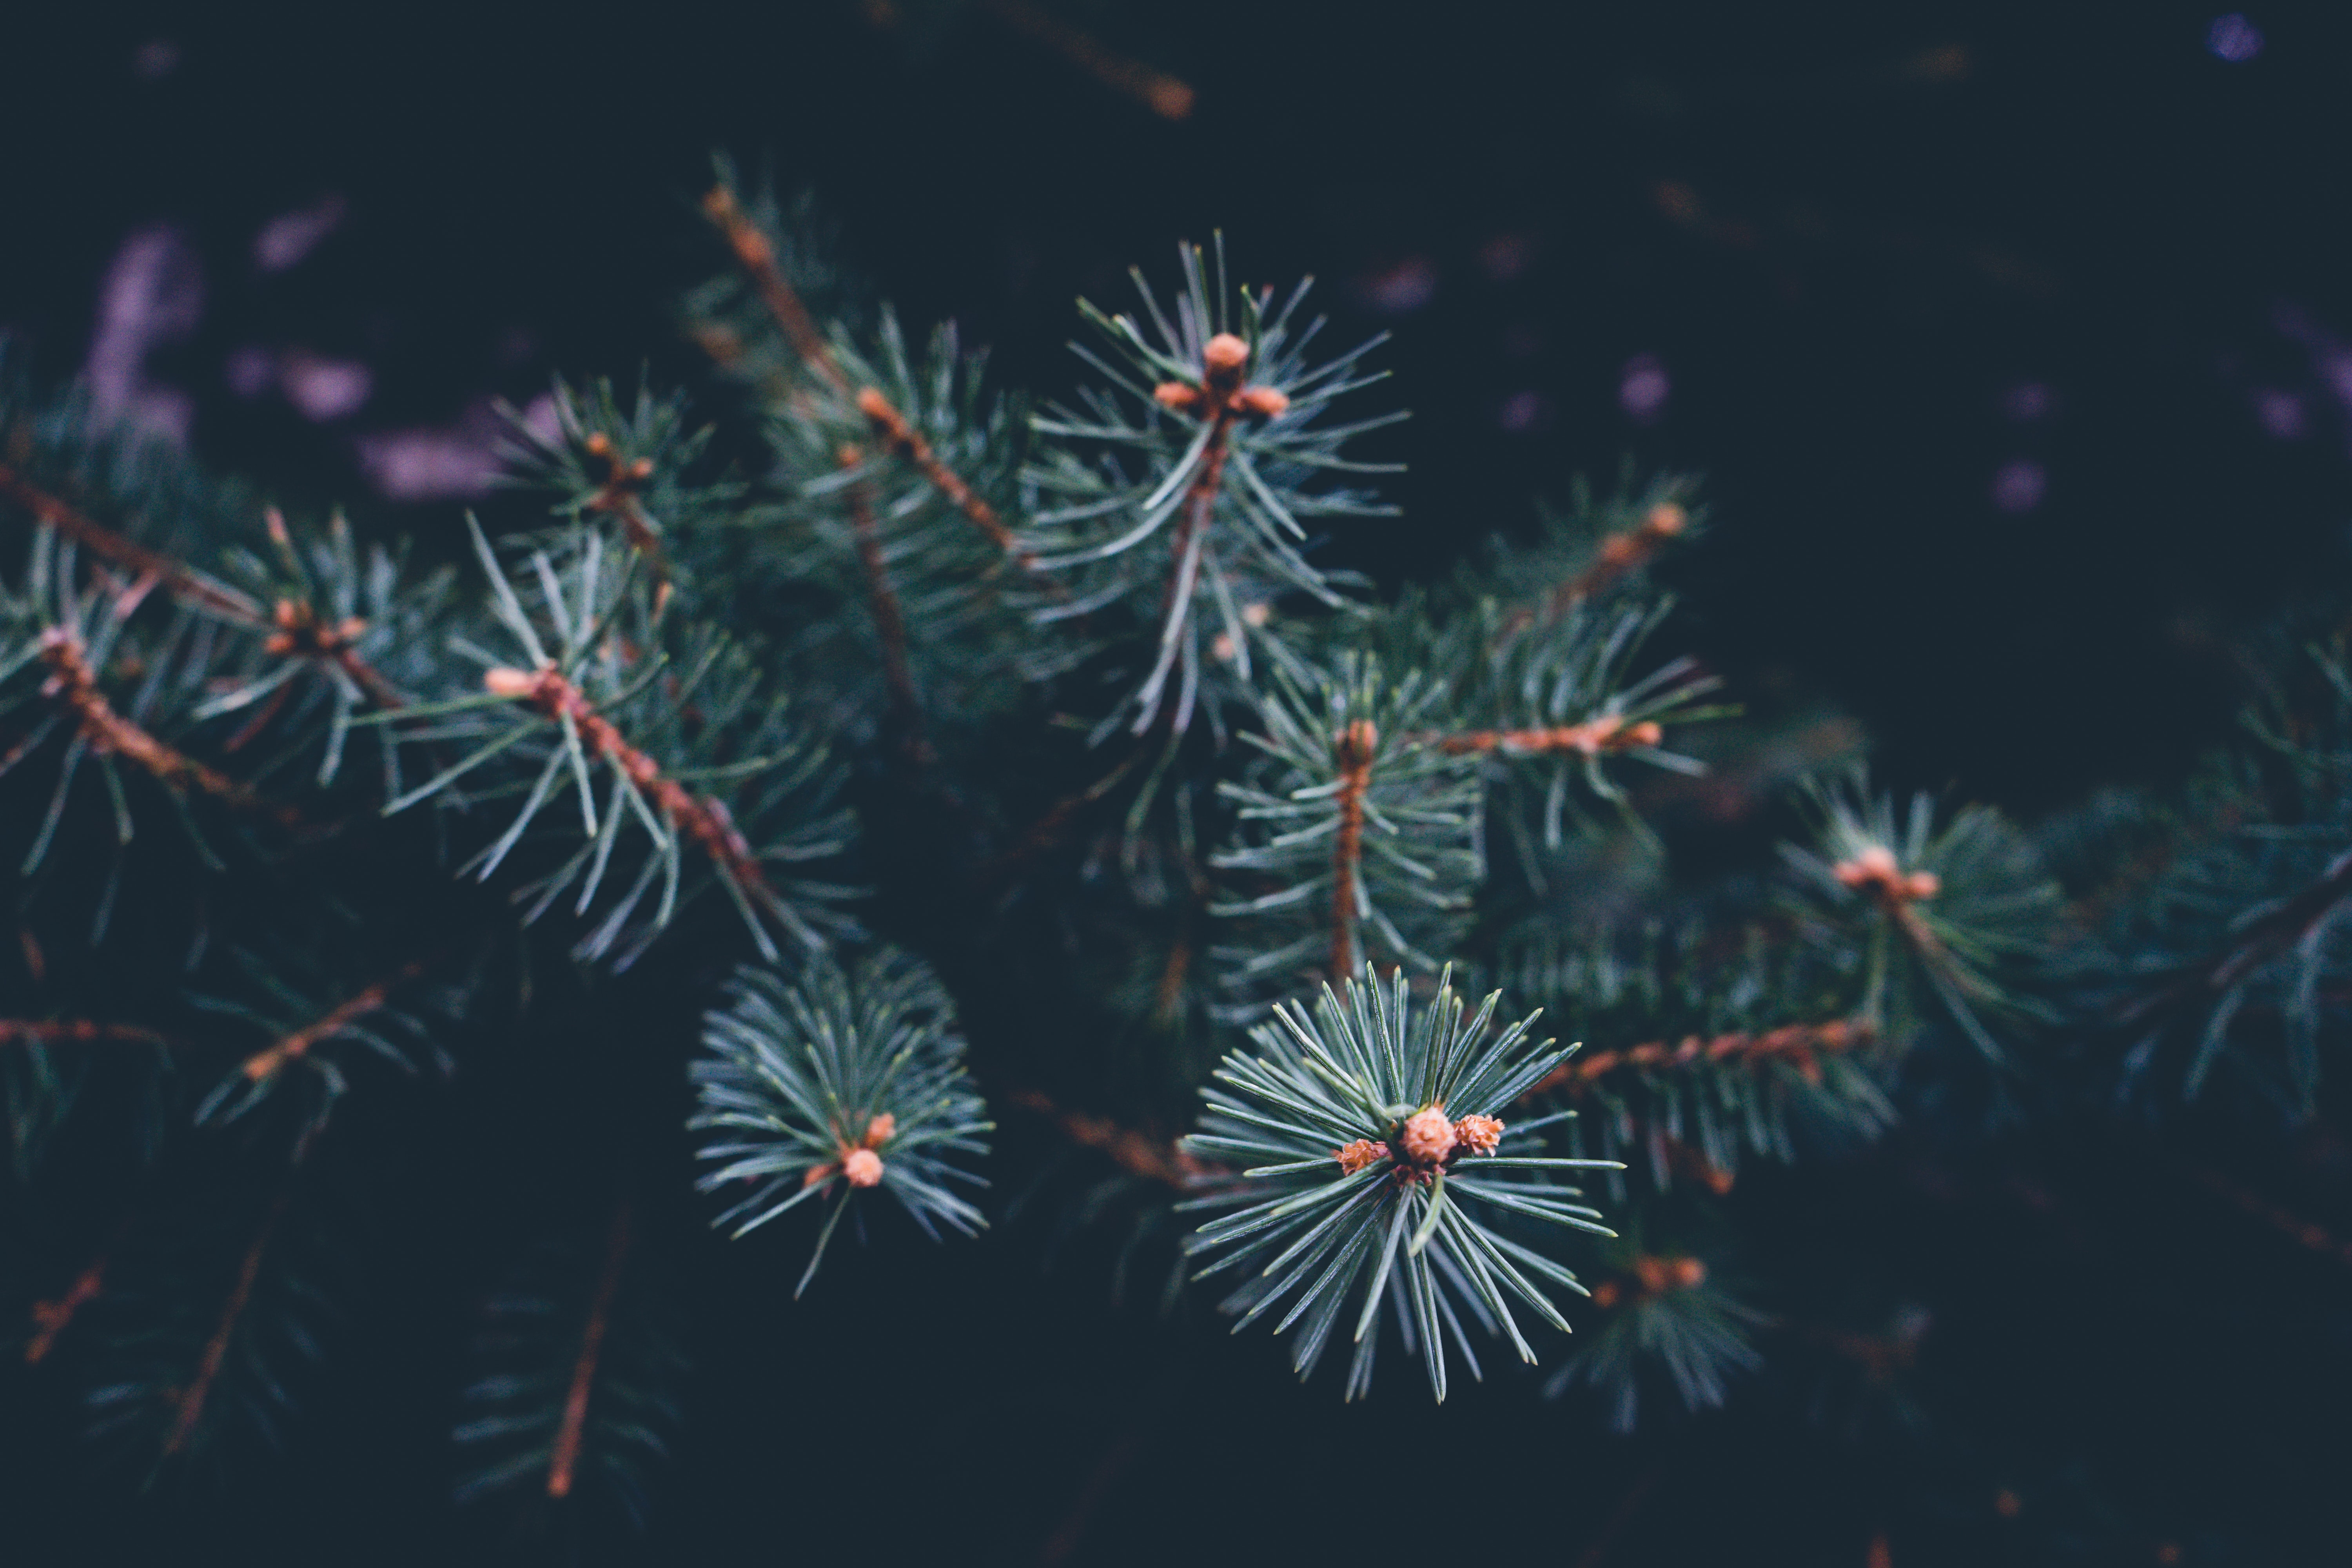 A cluster of pine needle stand out against the backdrop of the tree